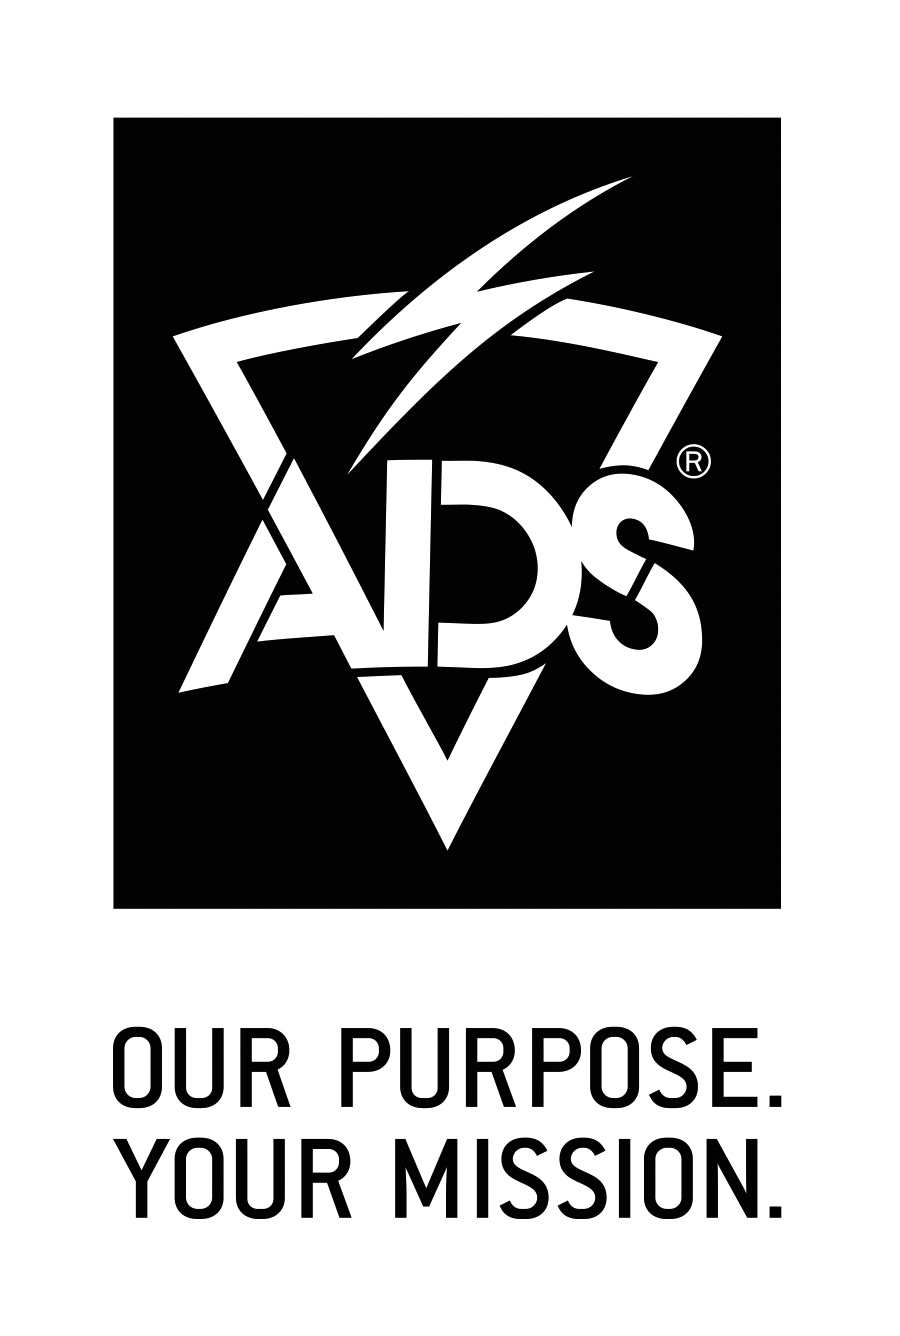 ADS-Logoboxed-Tag-Vertical-Black-High-Res.jpg